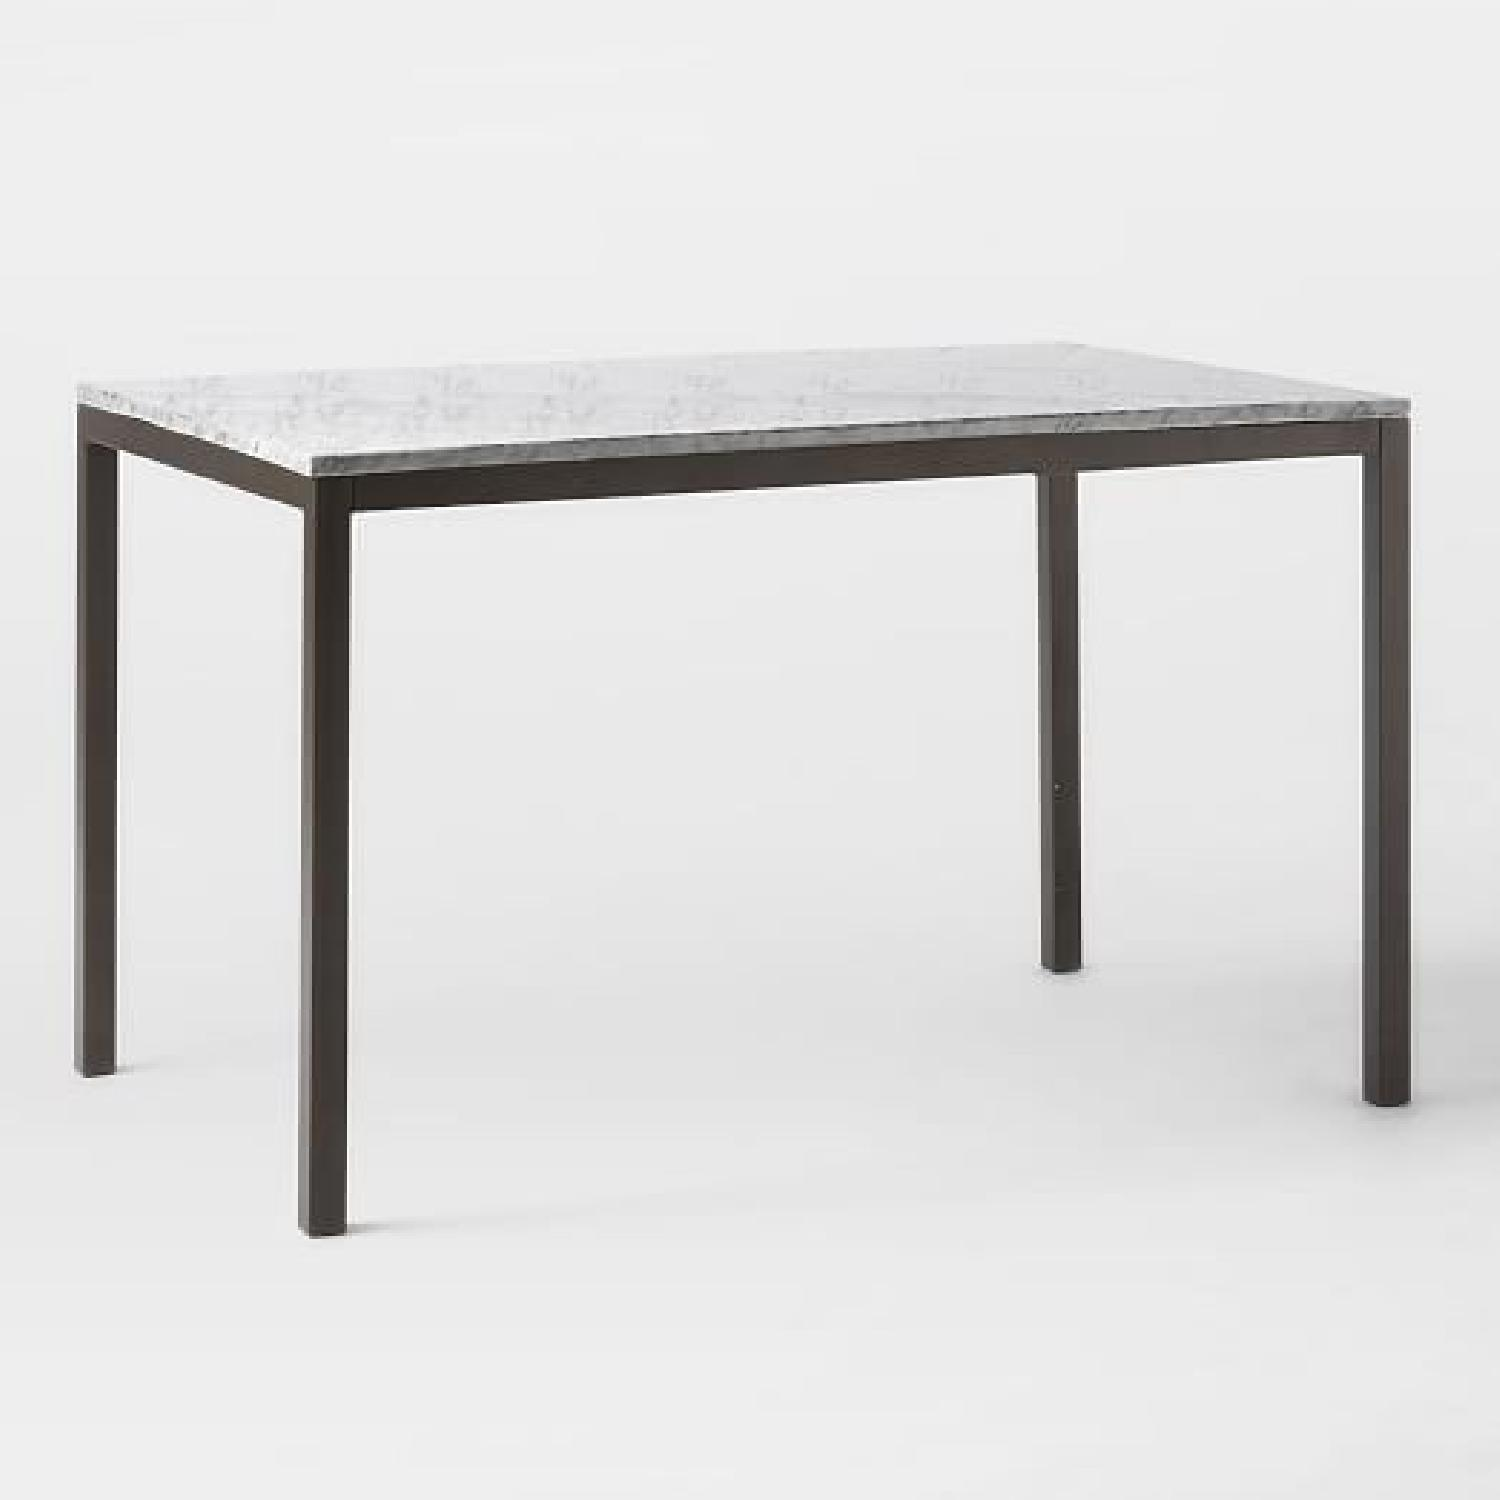 West Elm Box Frame Marble Dining Table - image-7